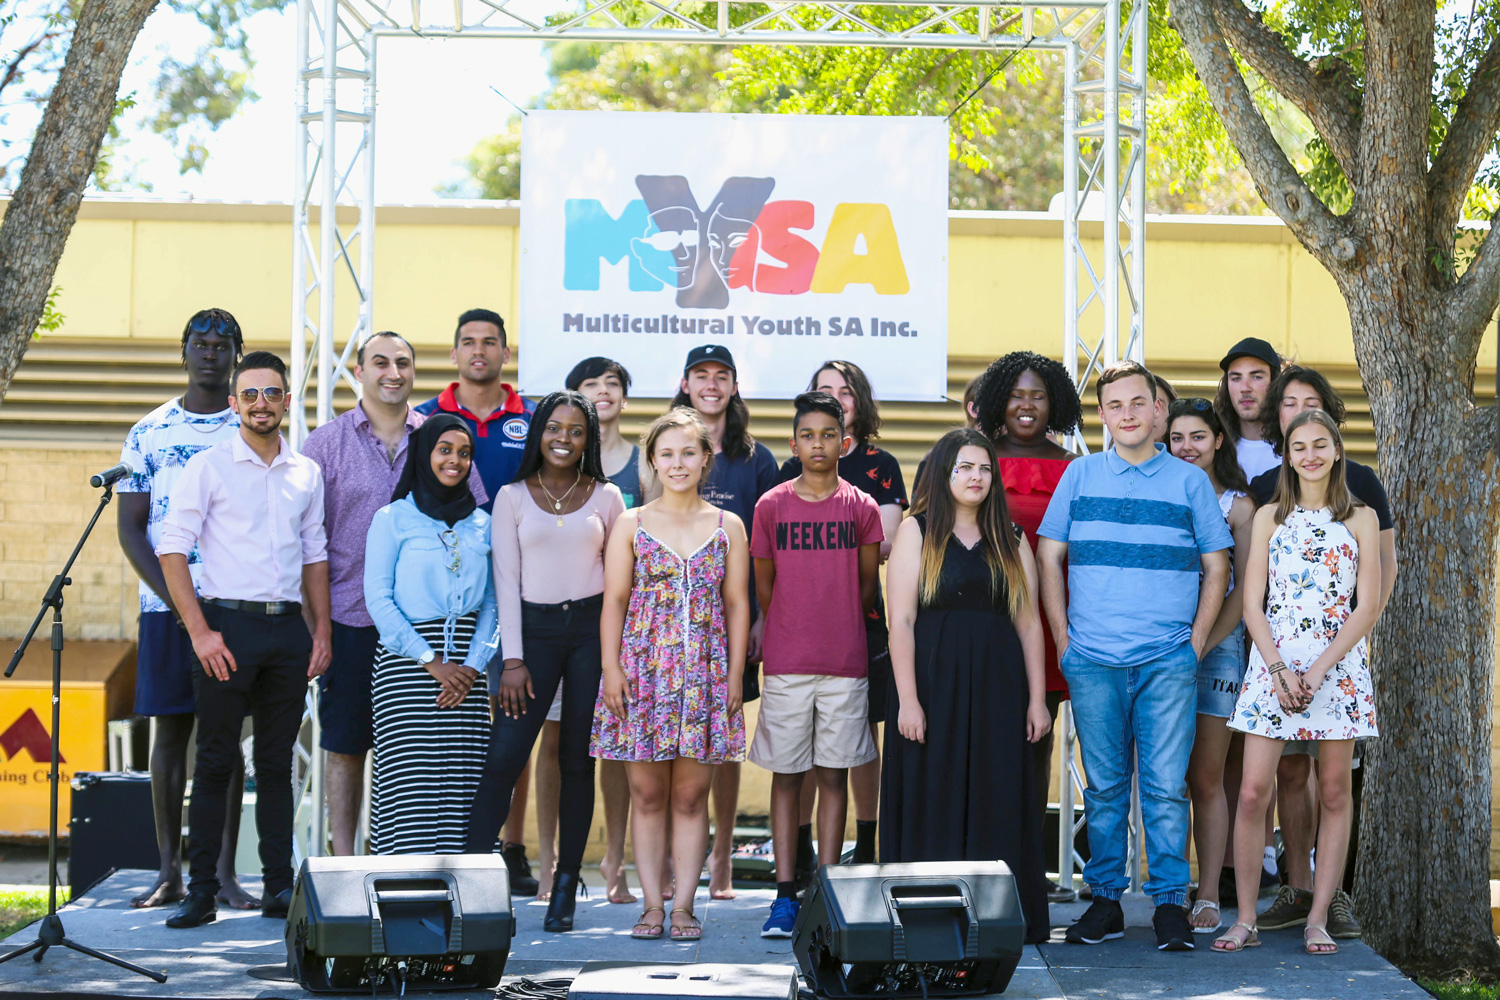 Young adults stand together in from of a MYSA banner.